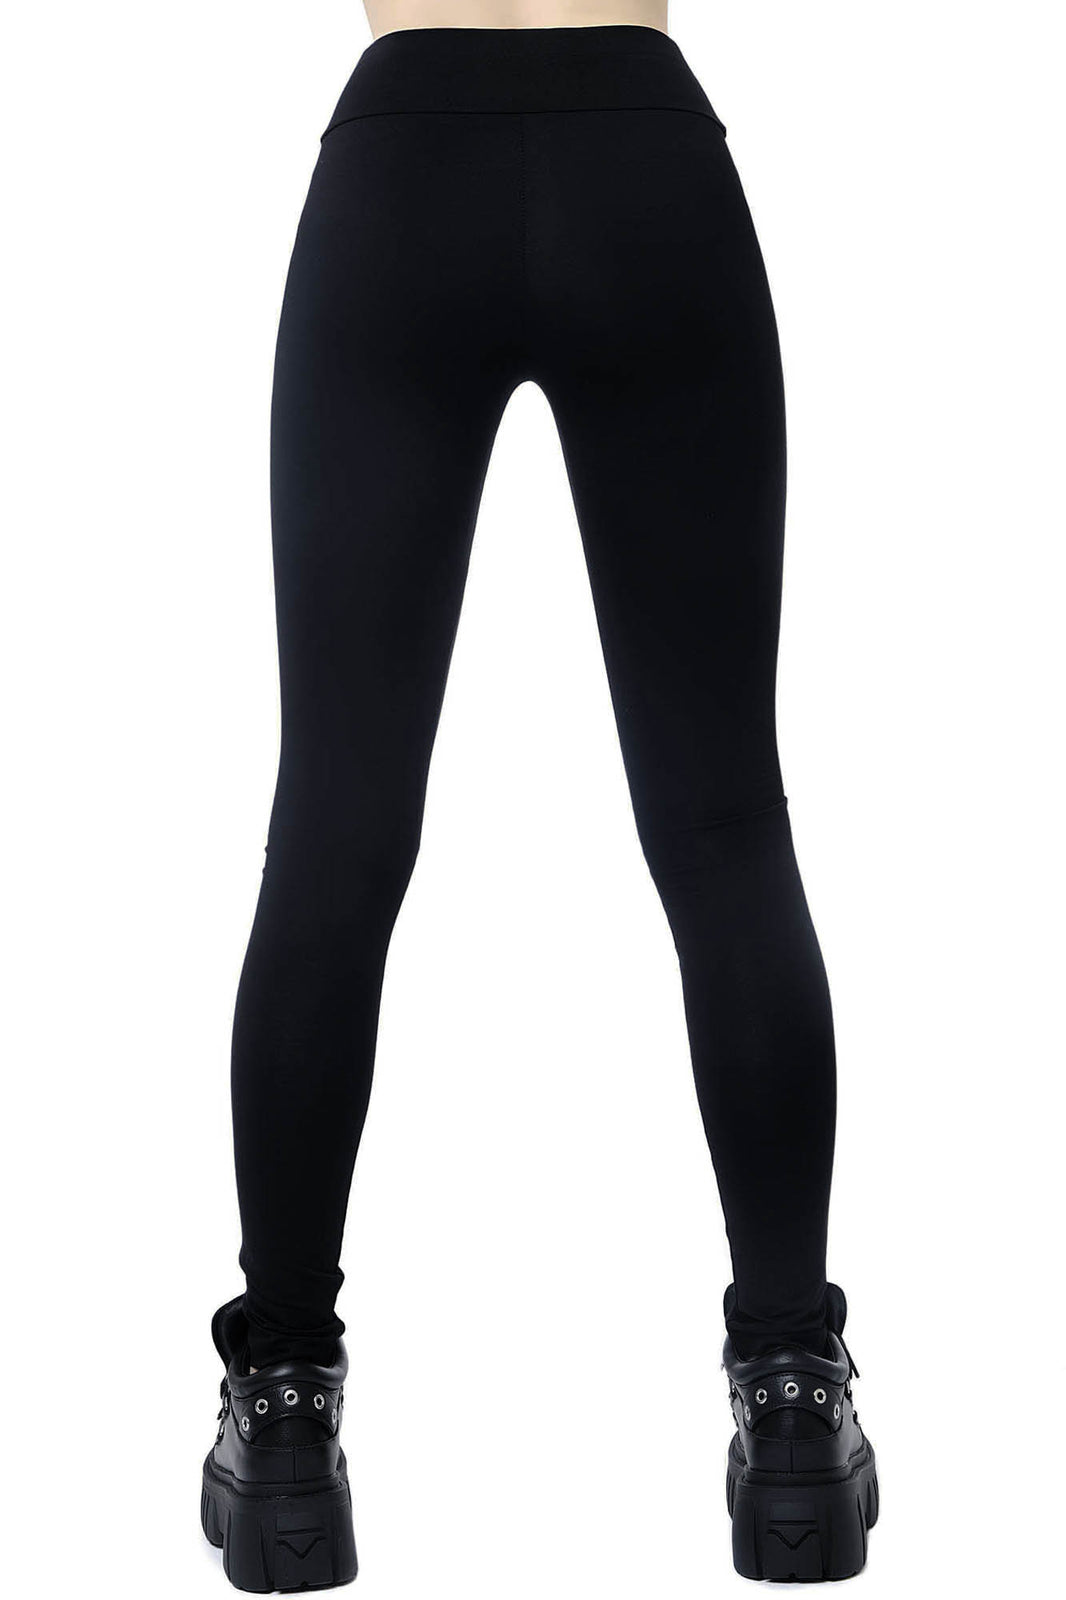 Haxa Leggings